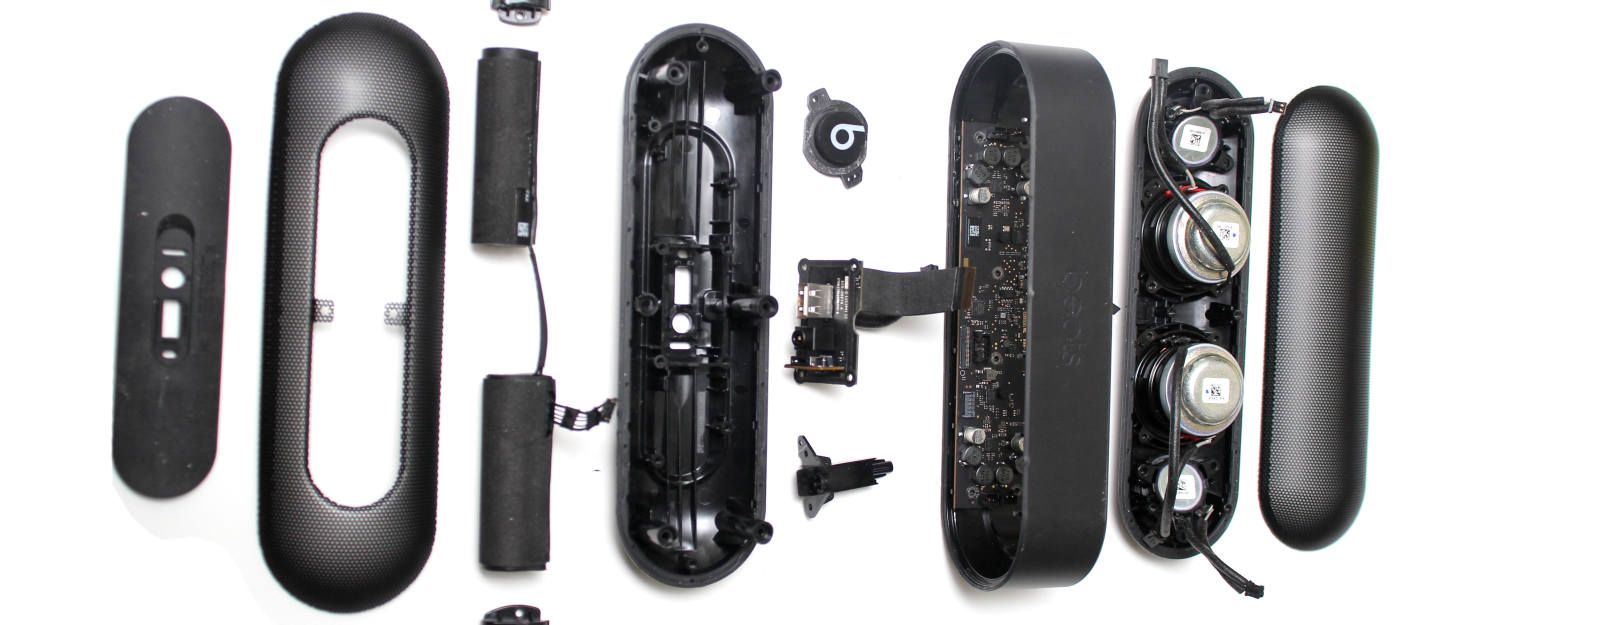 A Look Inside Your Wireless Speaker: Beats Pill Plus ... Beats By Dre Color Wiring Diagram on